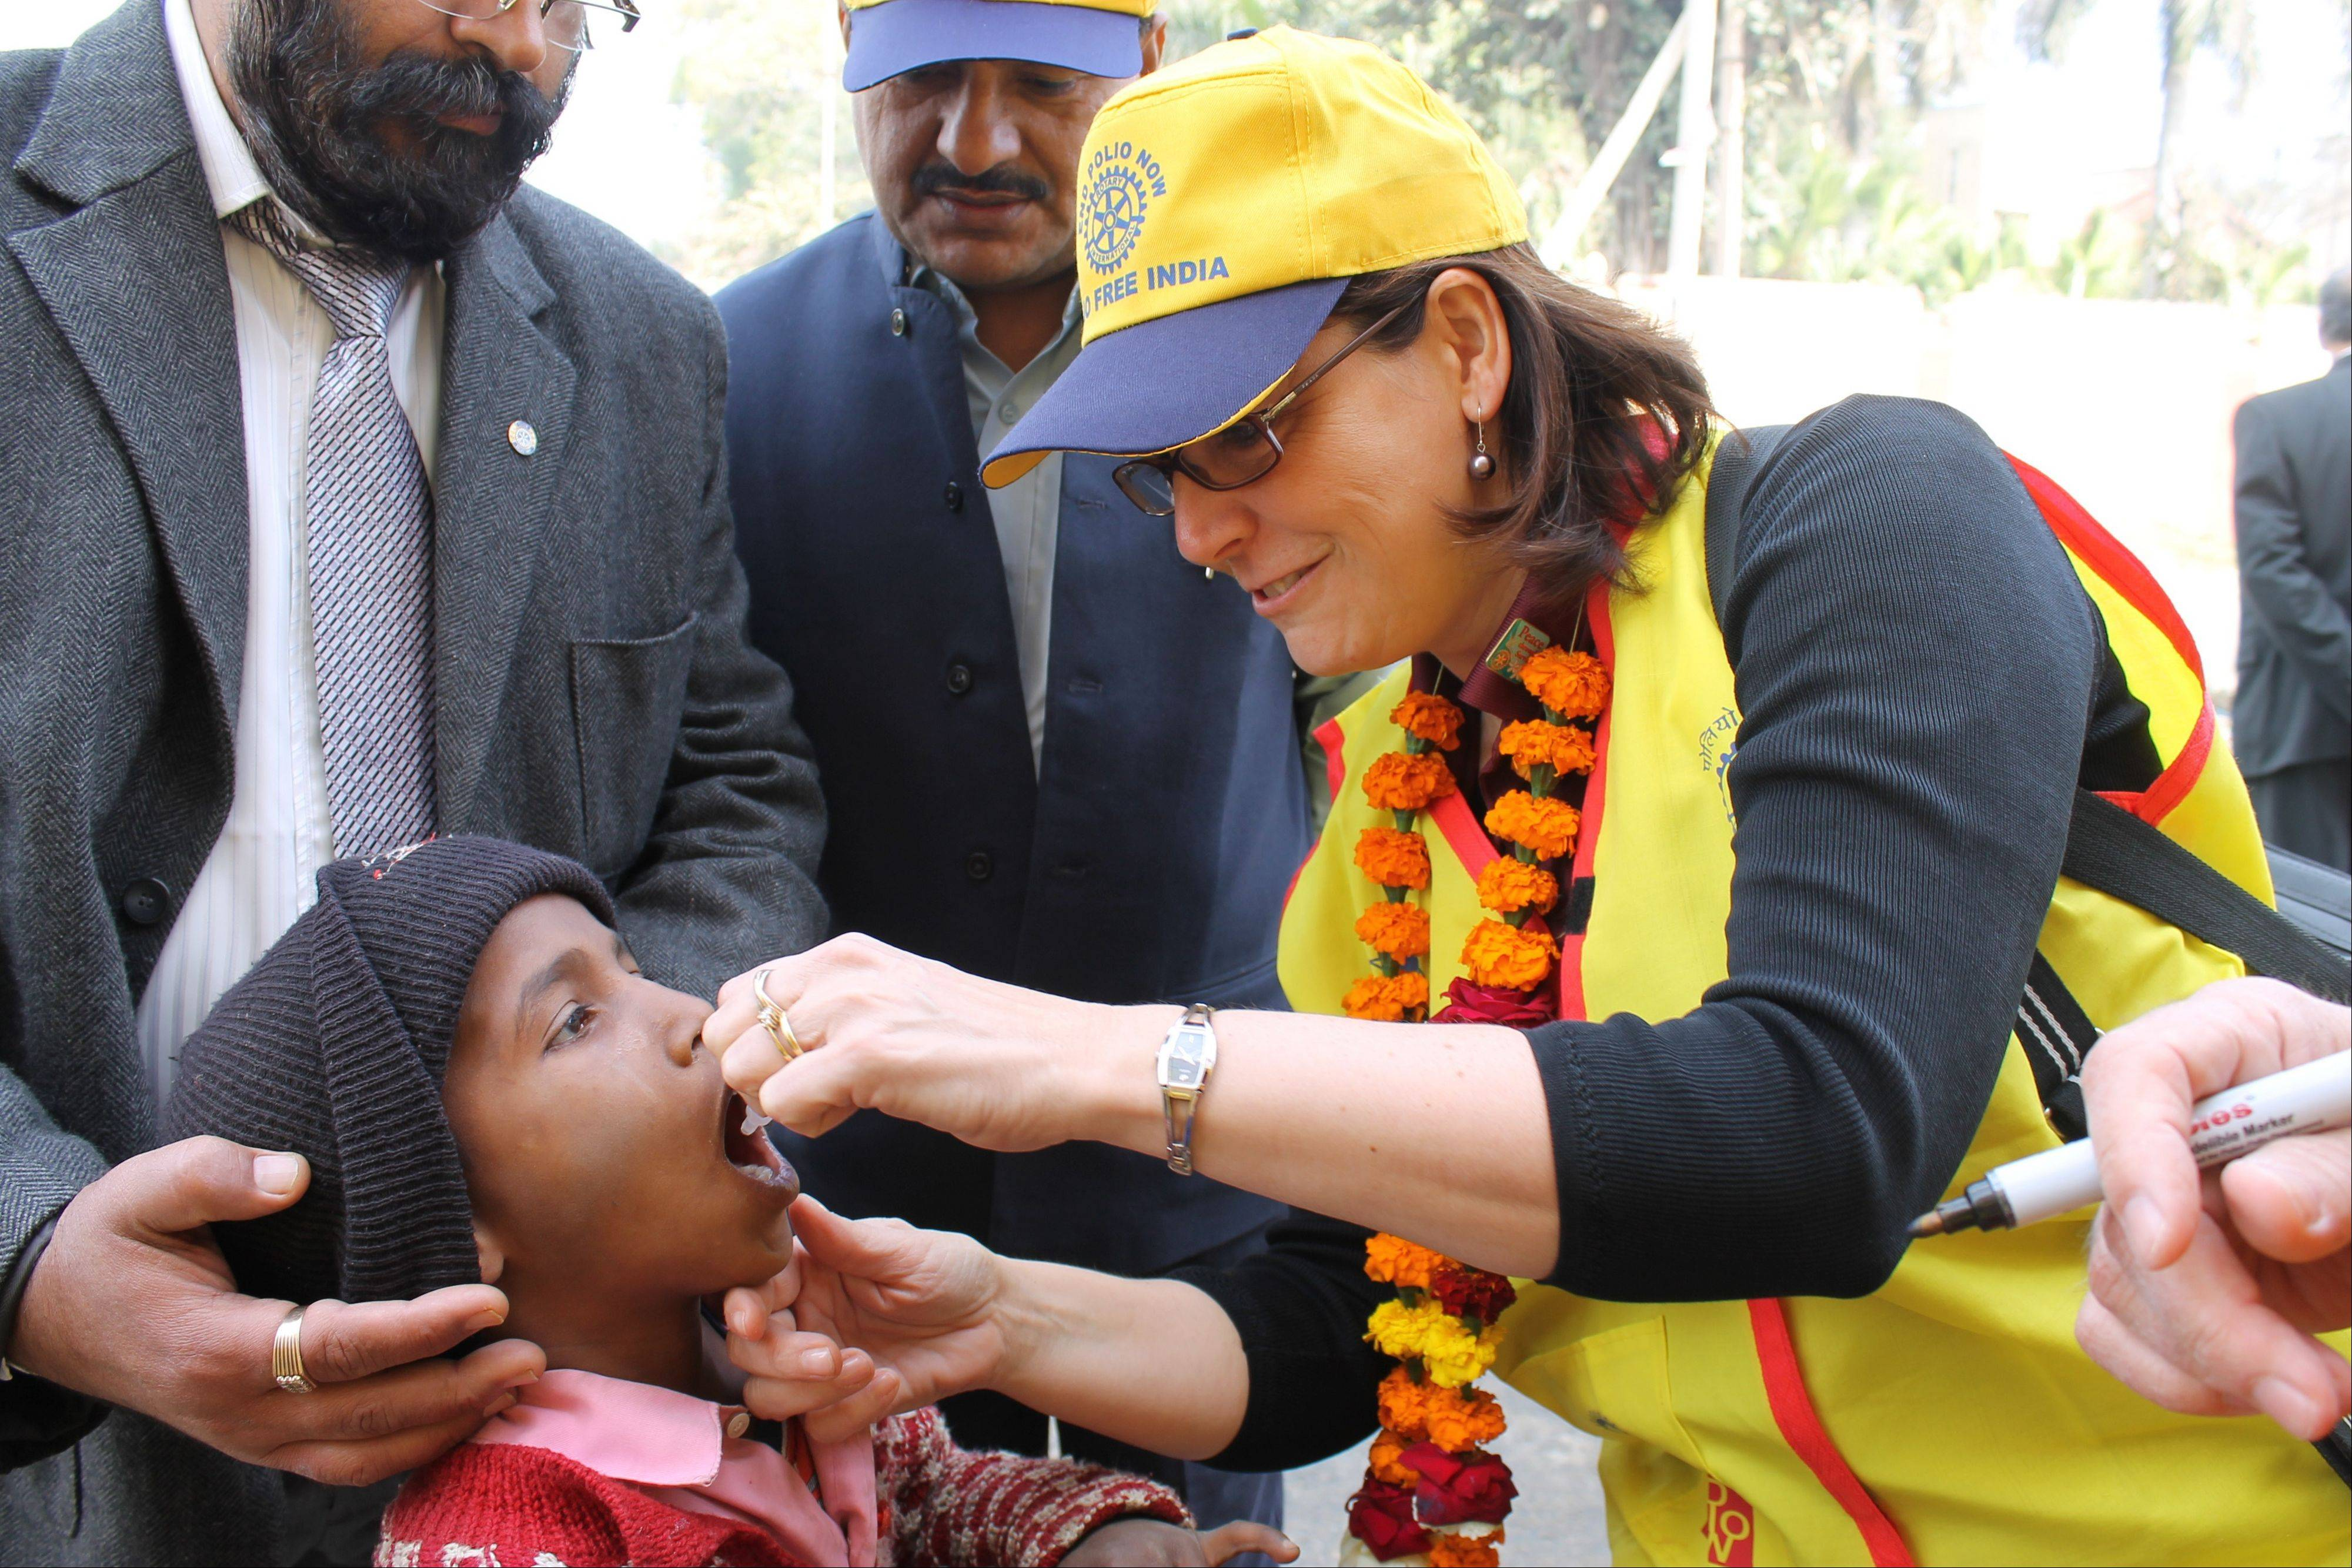 Nicki Scott, former president of the Rotary Club of Naperville Sunrise, administers the polio vaccine to a child in Sonipat, India, northwest of New Delhi. Scott and a group of 37 Rotarians from the United States and Canada joined thousands of other volunteers in India Feb. 19-21 to help with National Immunization Days.